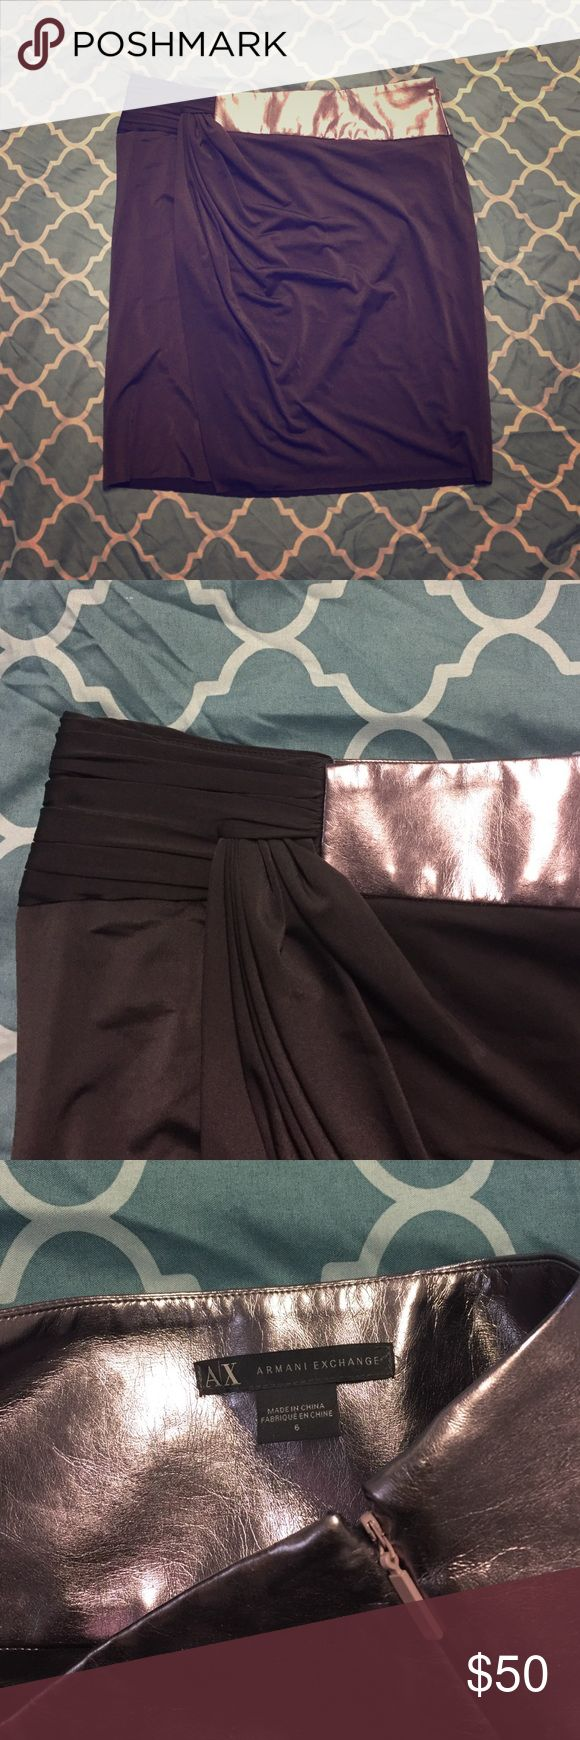 Armani exchange mini skirt Never worn skirt with side zipper. Very soft  black fabric with pewter on the left side. Slit on the right. 19 inches. Armani Exchange Skirts Mini